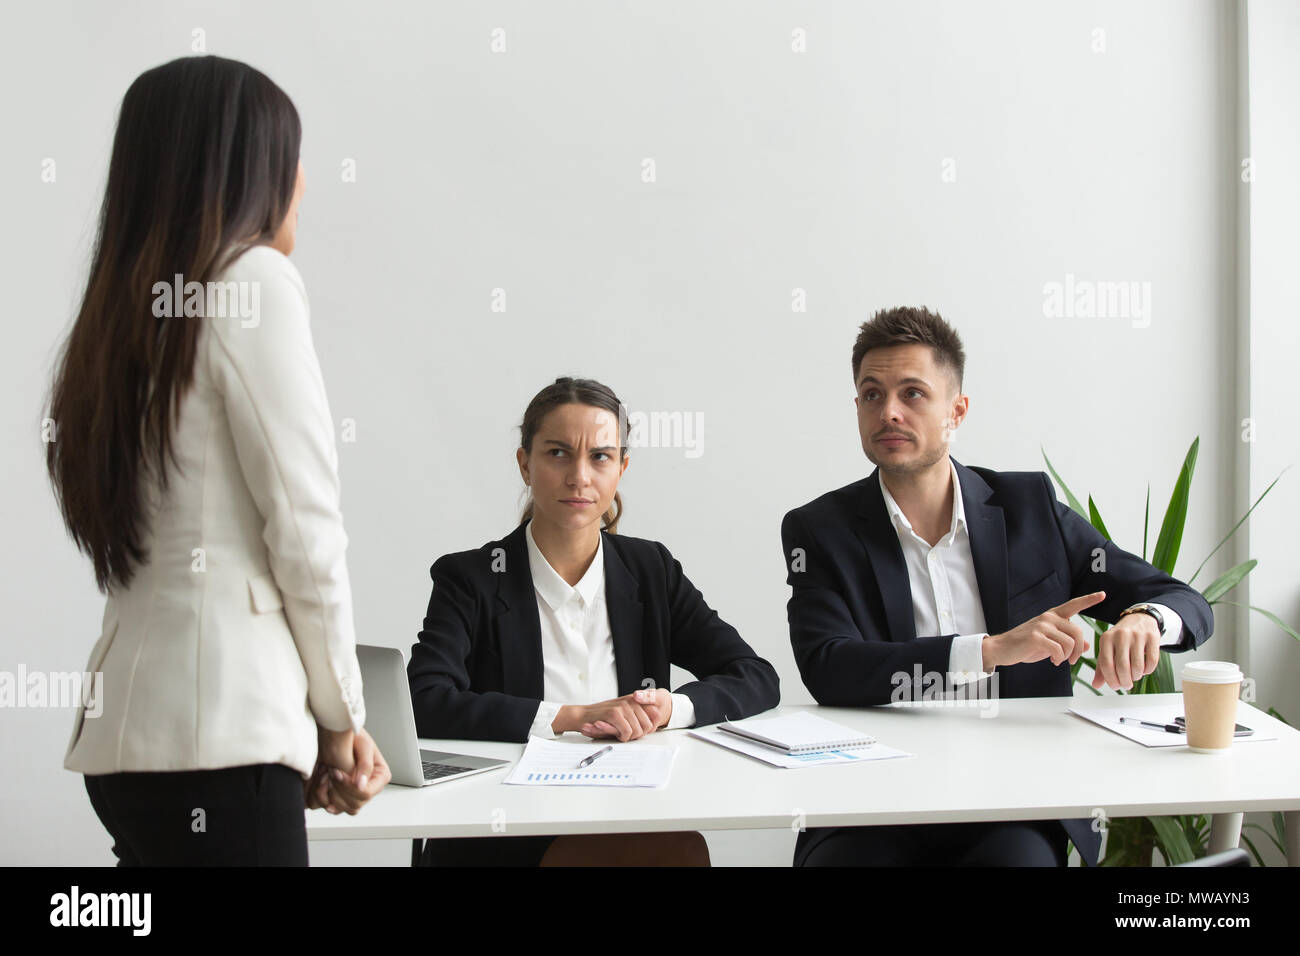 Angry executive pointing at wristwatch scolding employee for bei - Stock Image